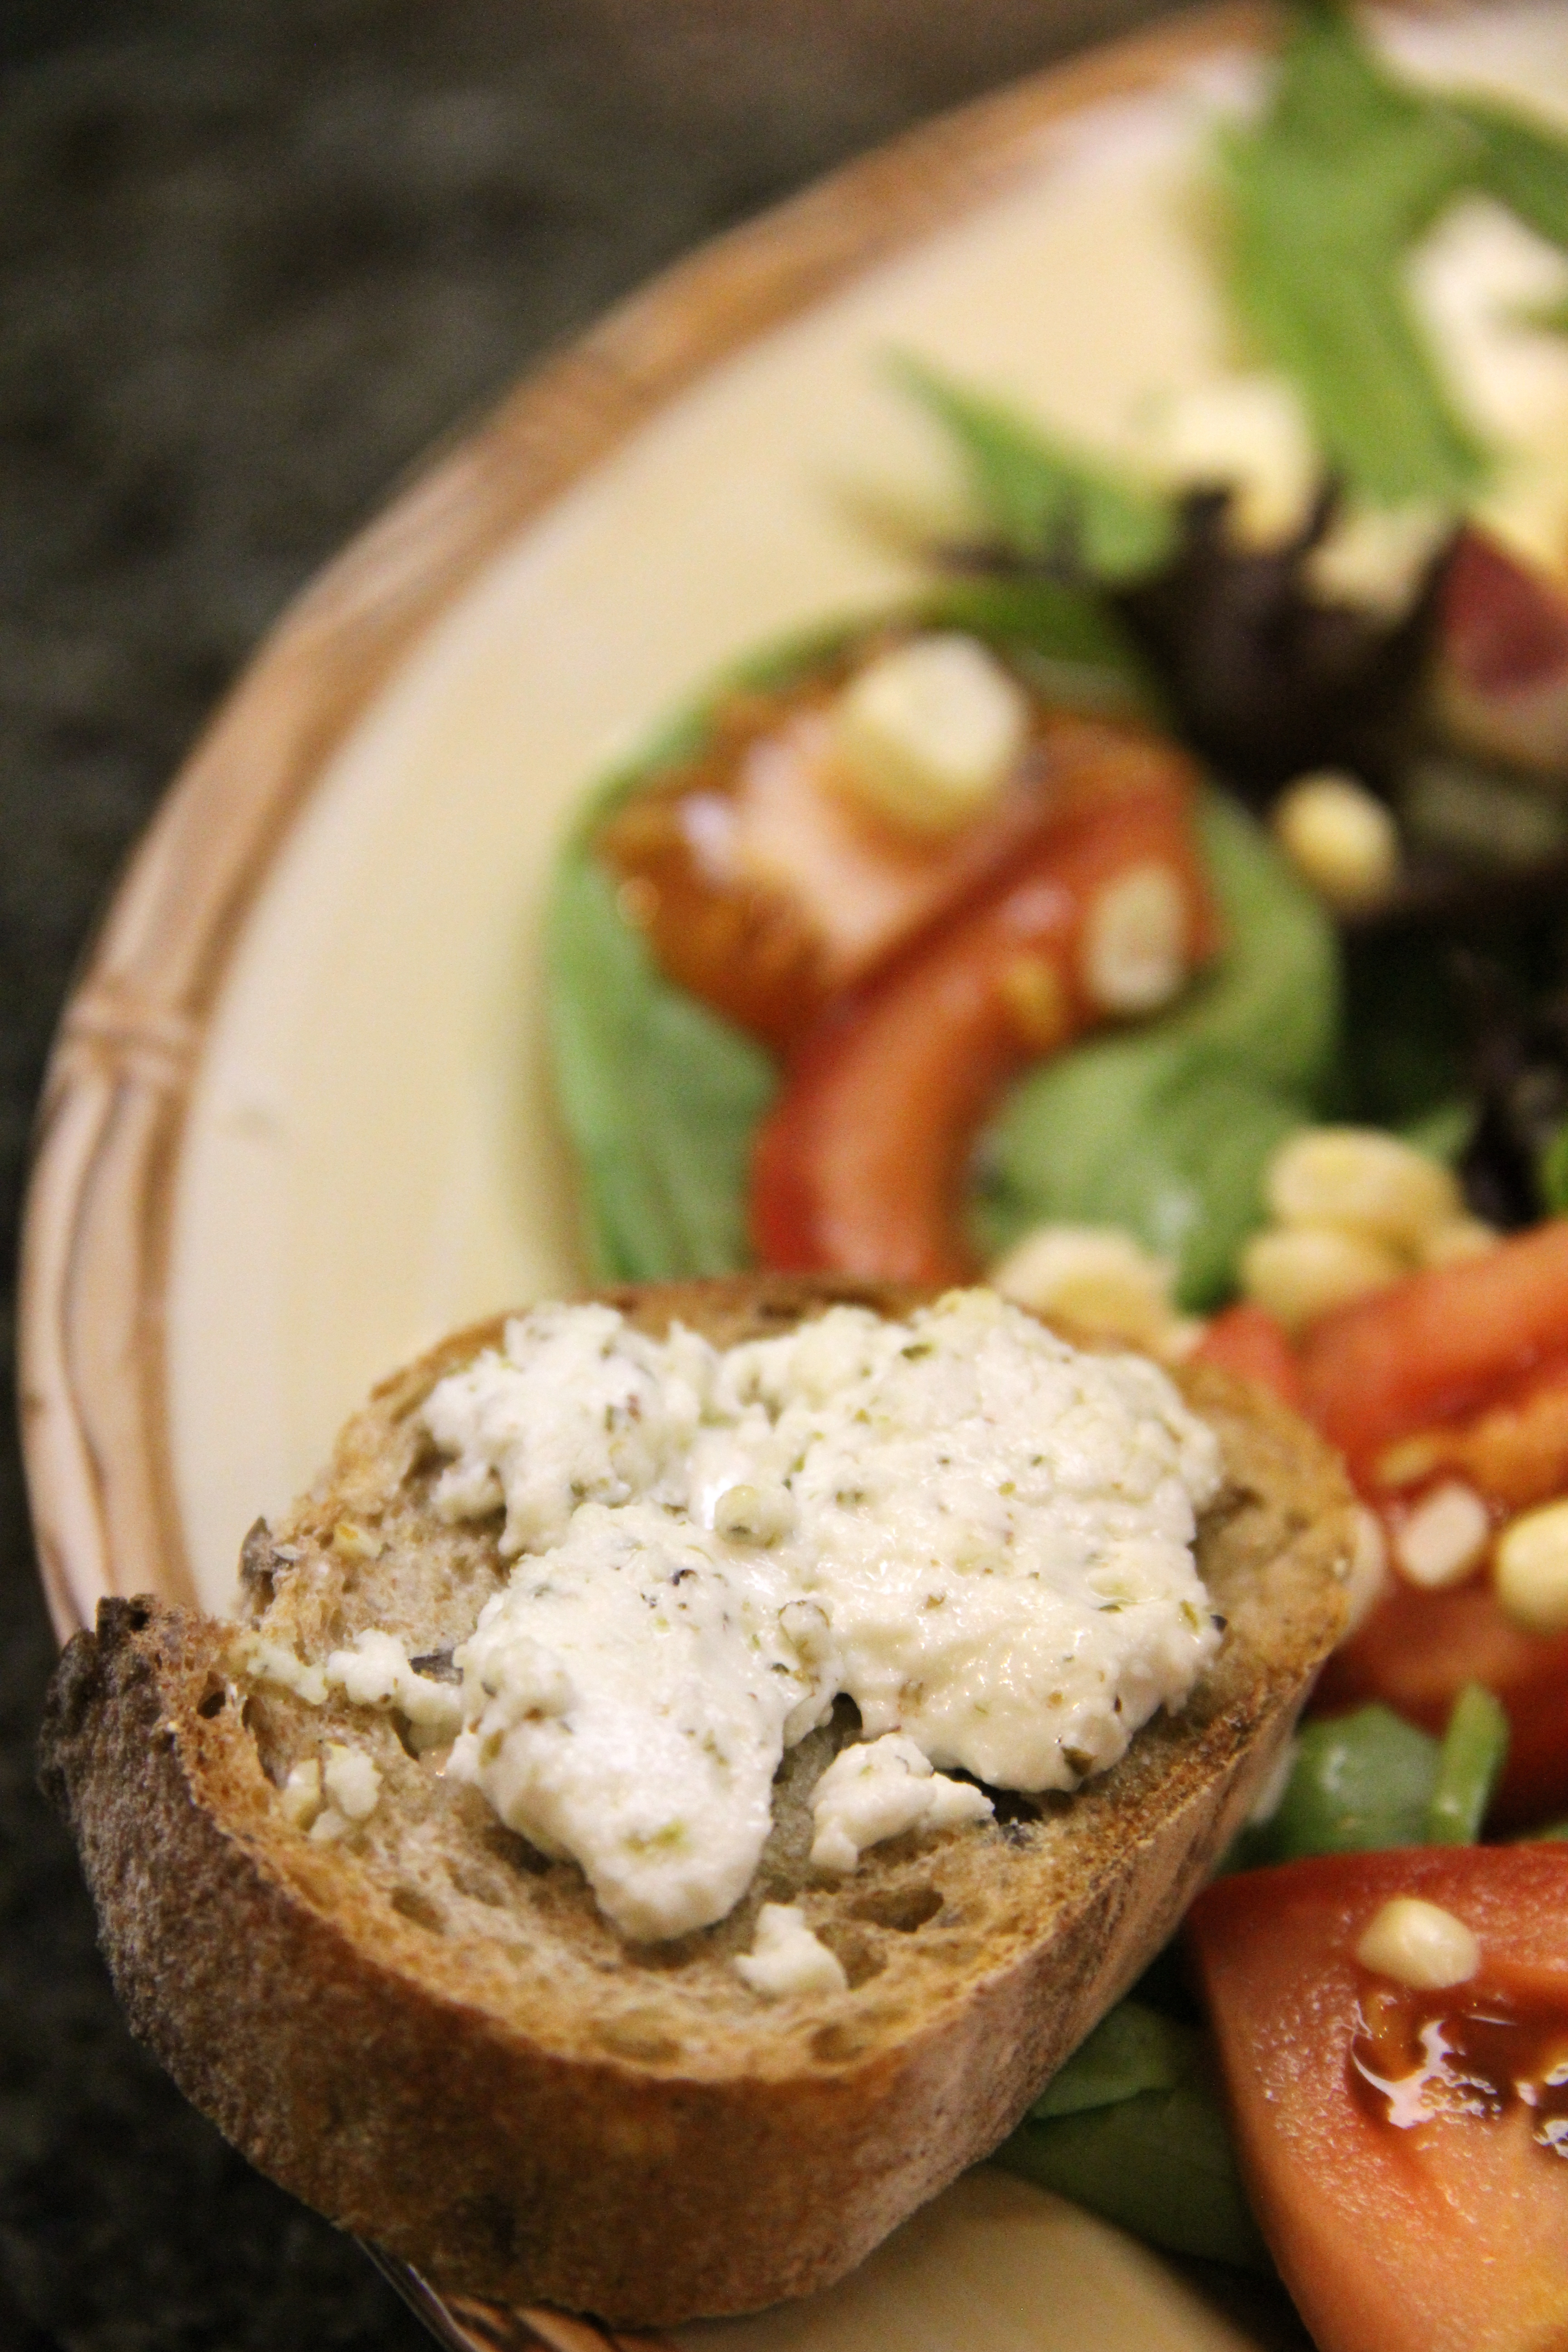 salade au ch vre chaud salad with warm goat cheese amy. Black Bedroom Furniture Sets. Home Design Ideas